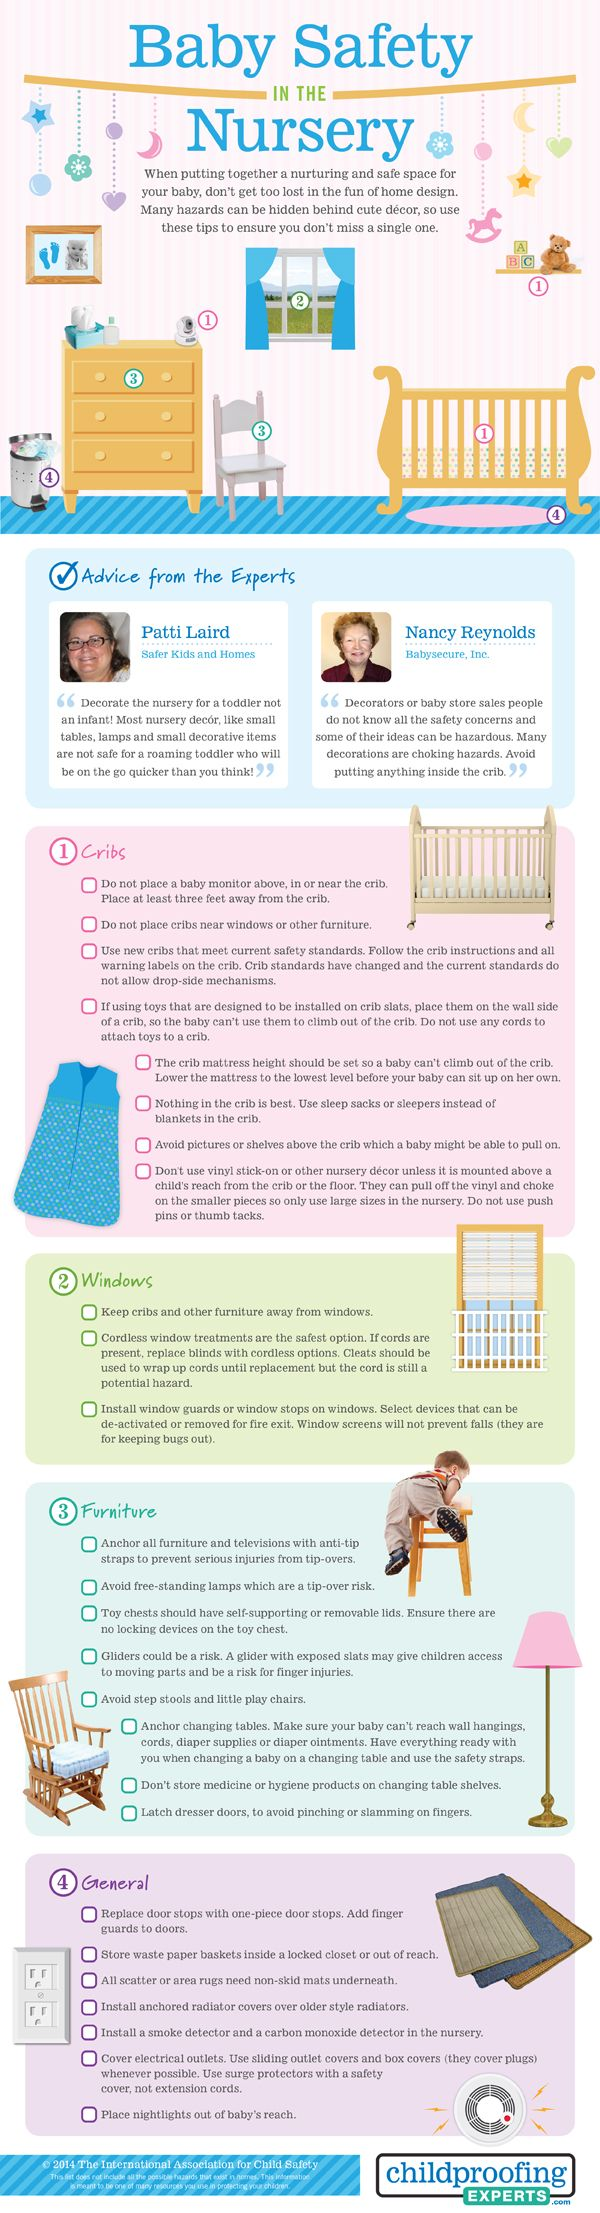 Check out these nursery safety tips to help you set up a safe nursery or childproof your nursery.